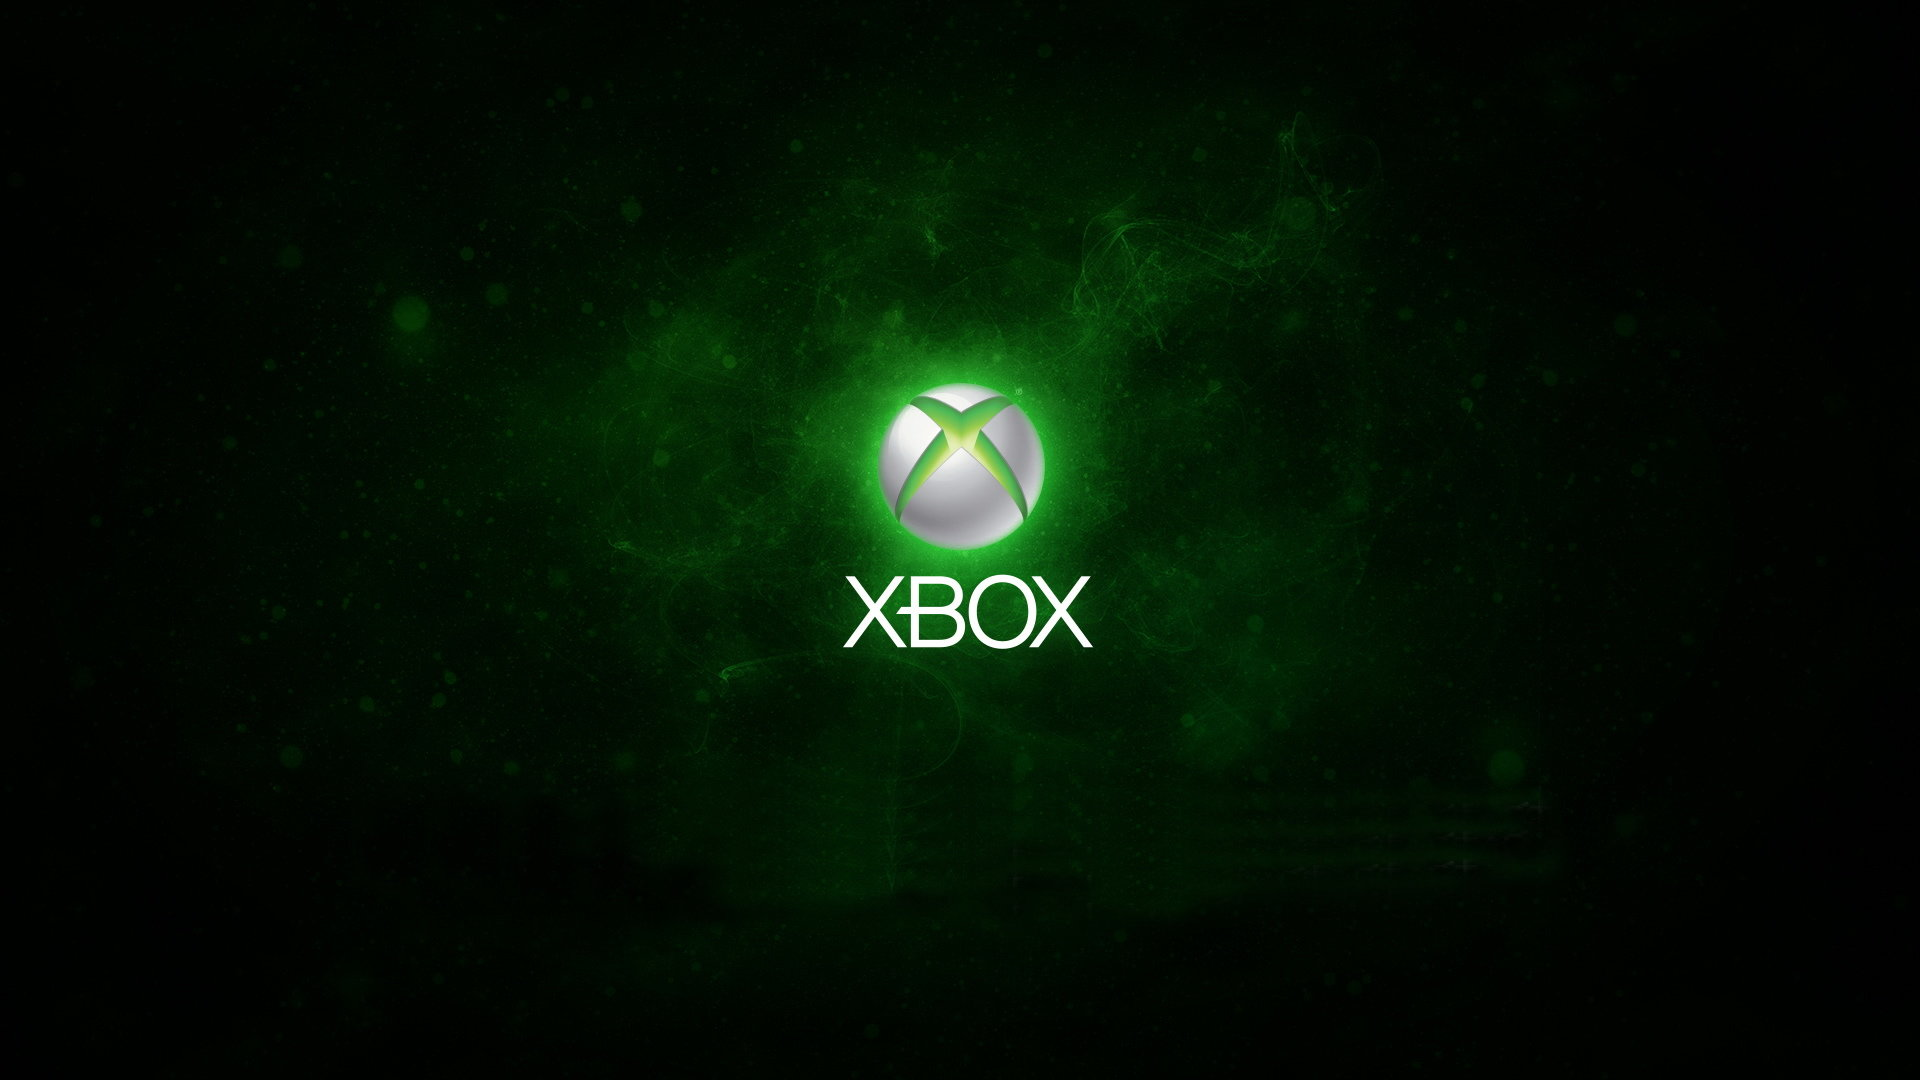 Xbox HD Wallpapers | PixelsTalk.Net